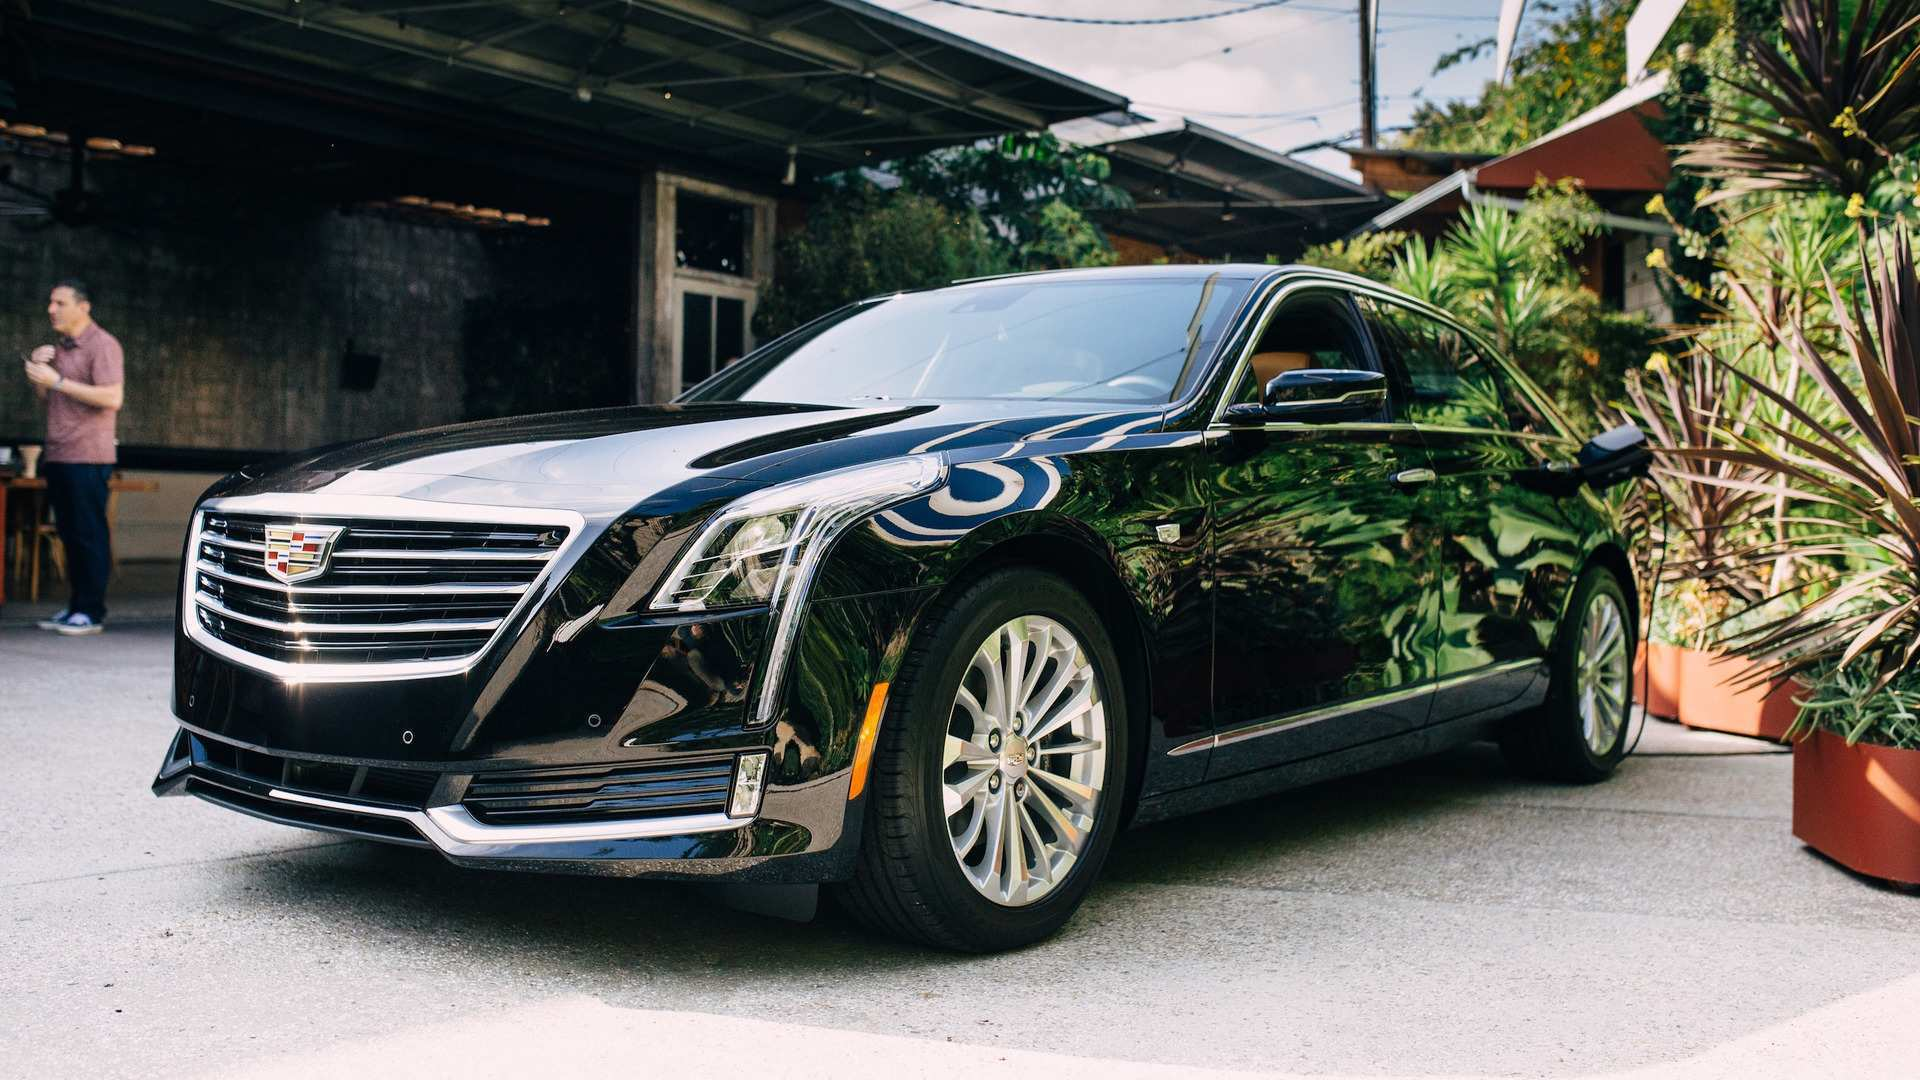 85 The 2020 Cadillac CT6 Performance And New Engine